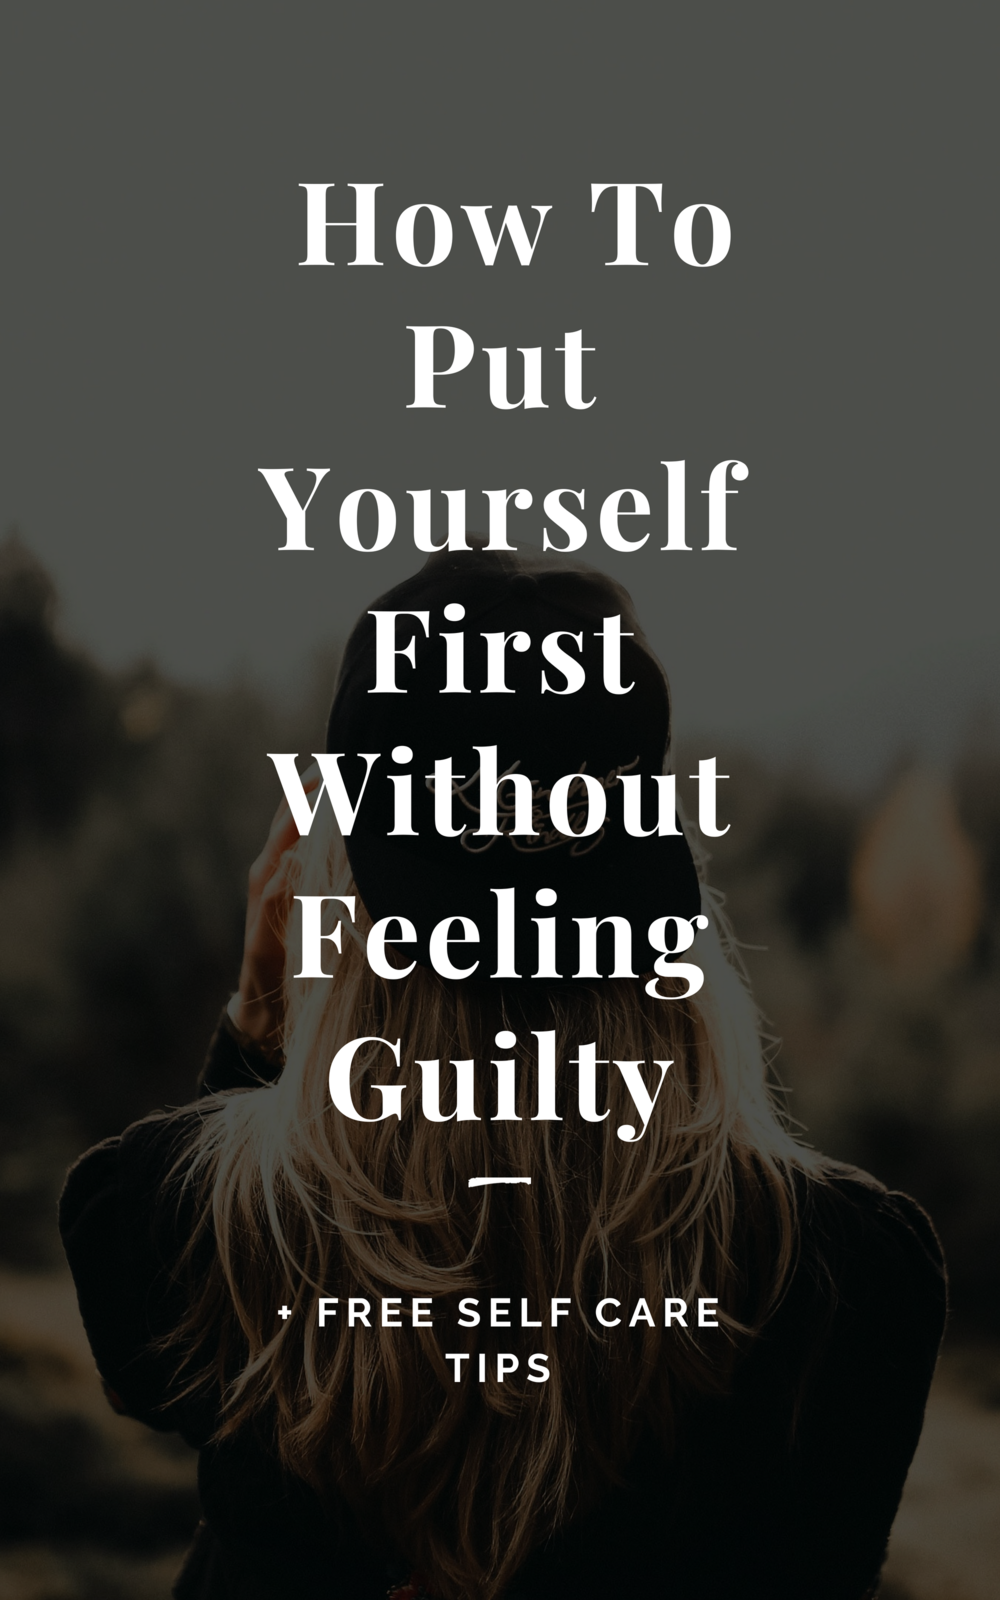 Why You Shouldn't Feel Guilty For Putting Yourself First